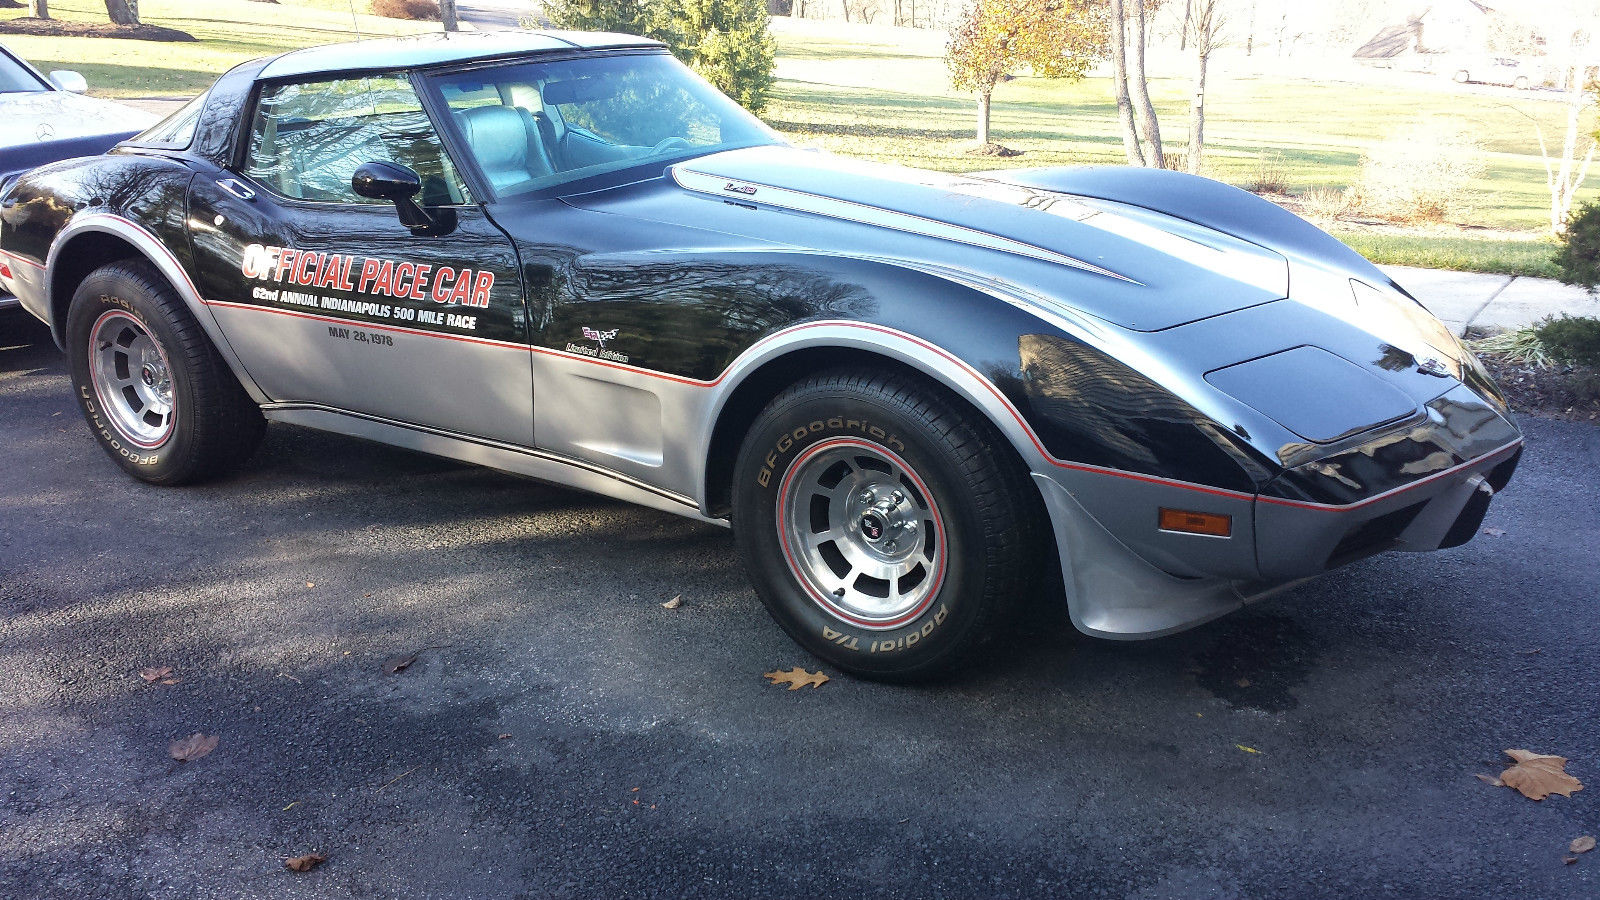 1978 corvette pace car low miles for sale in reisterstown maryland united states. Black Bedroom Furniture Sets. Home Design Ideas